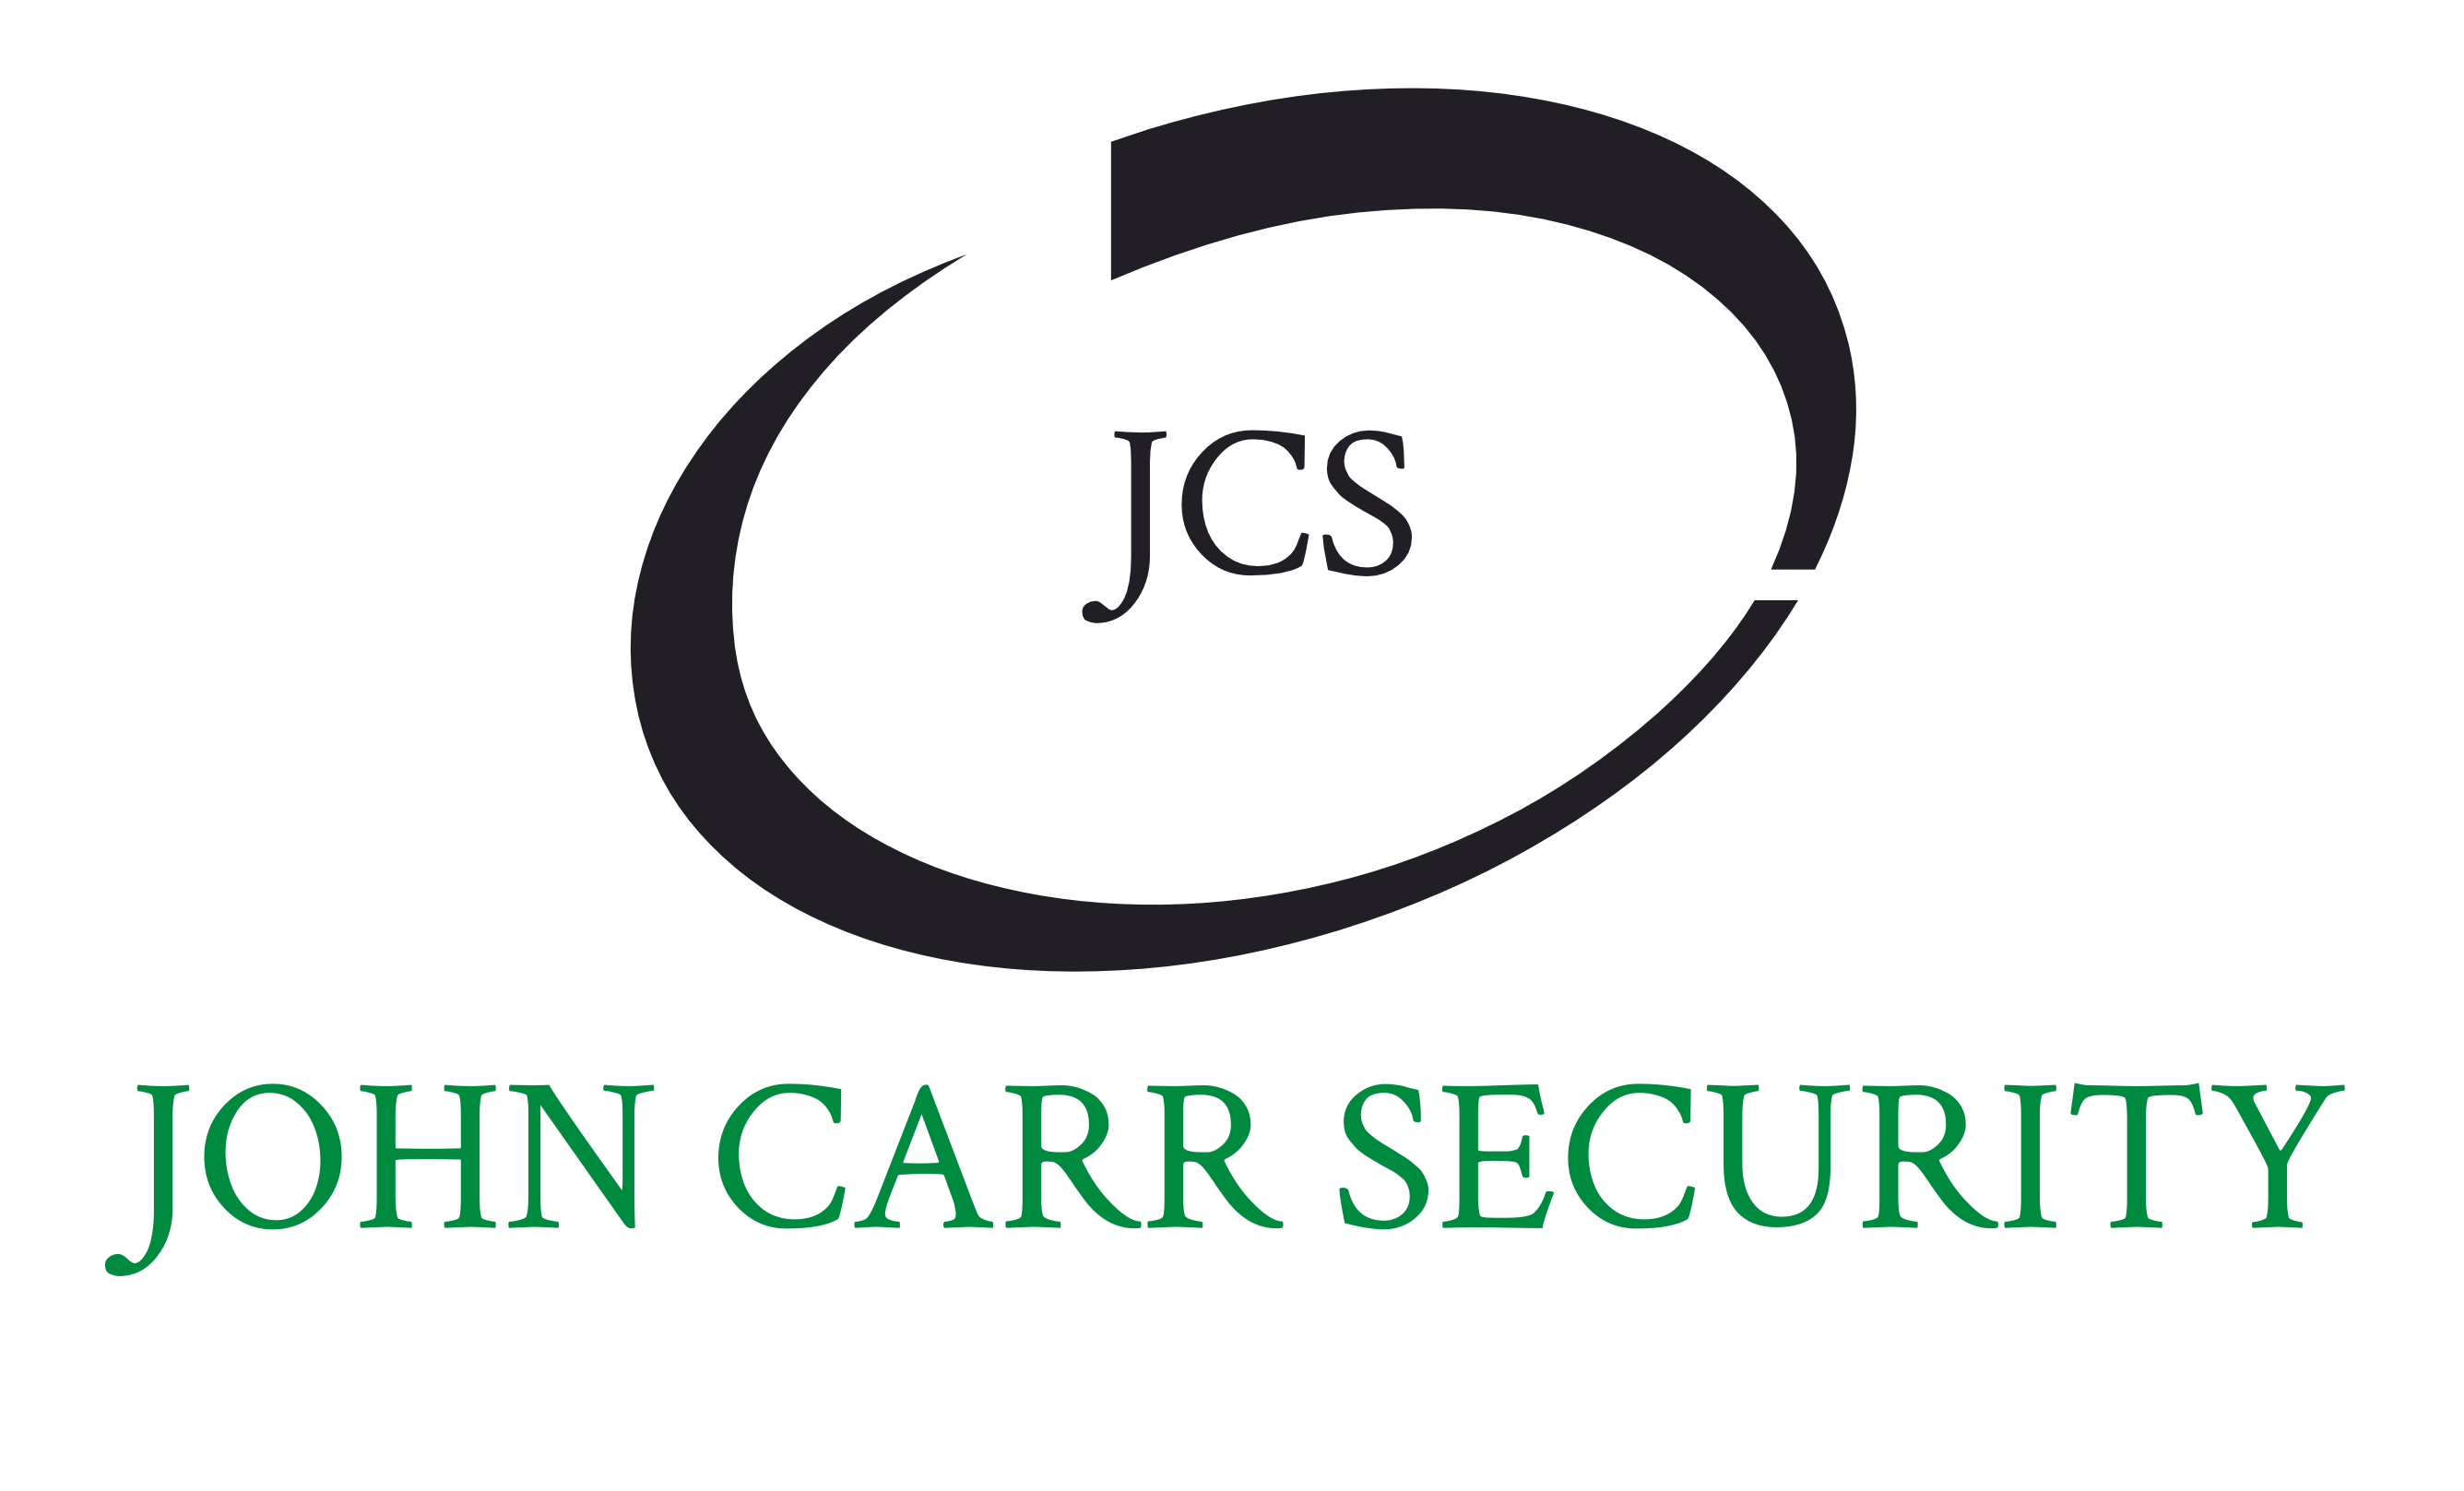 John Carr Security